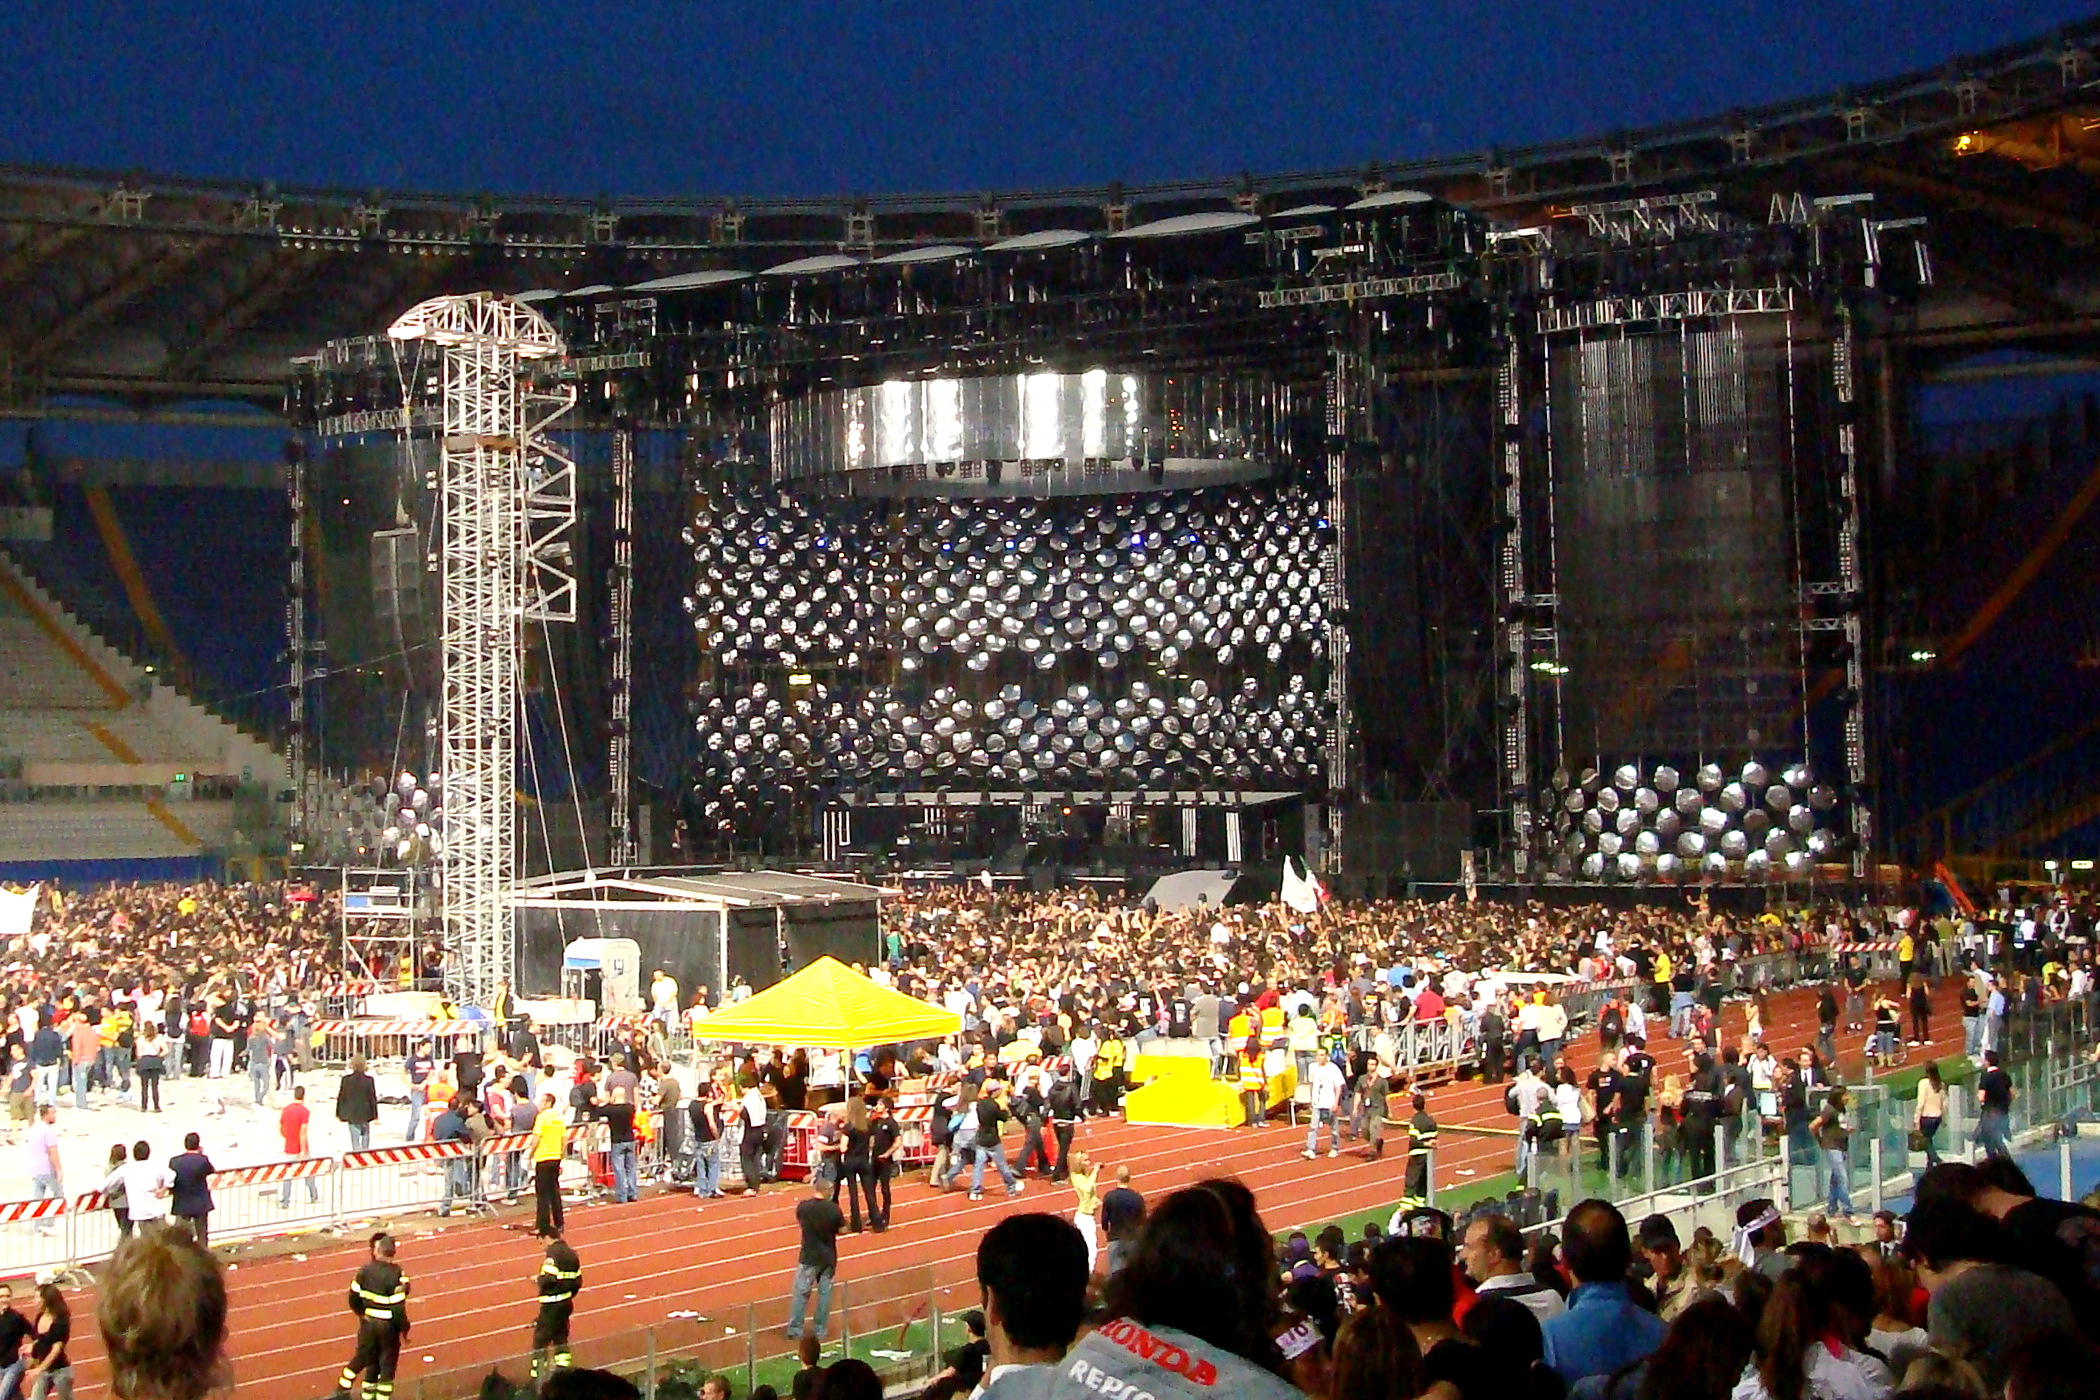 Data Concerto Vasco File Vasco08olimpico Jpg Wikimedia Commons